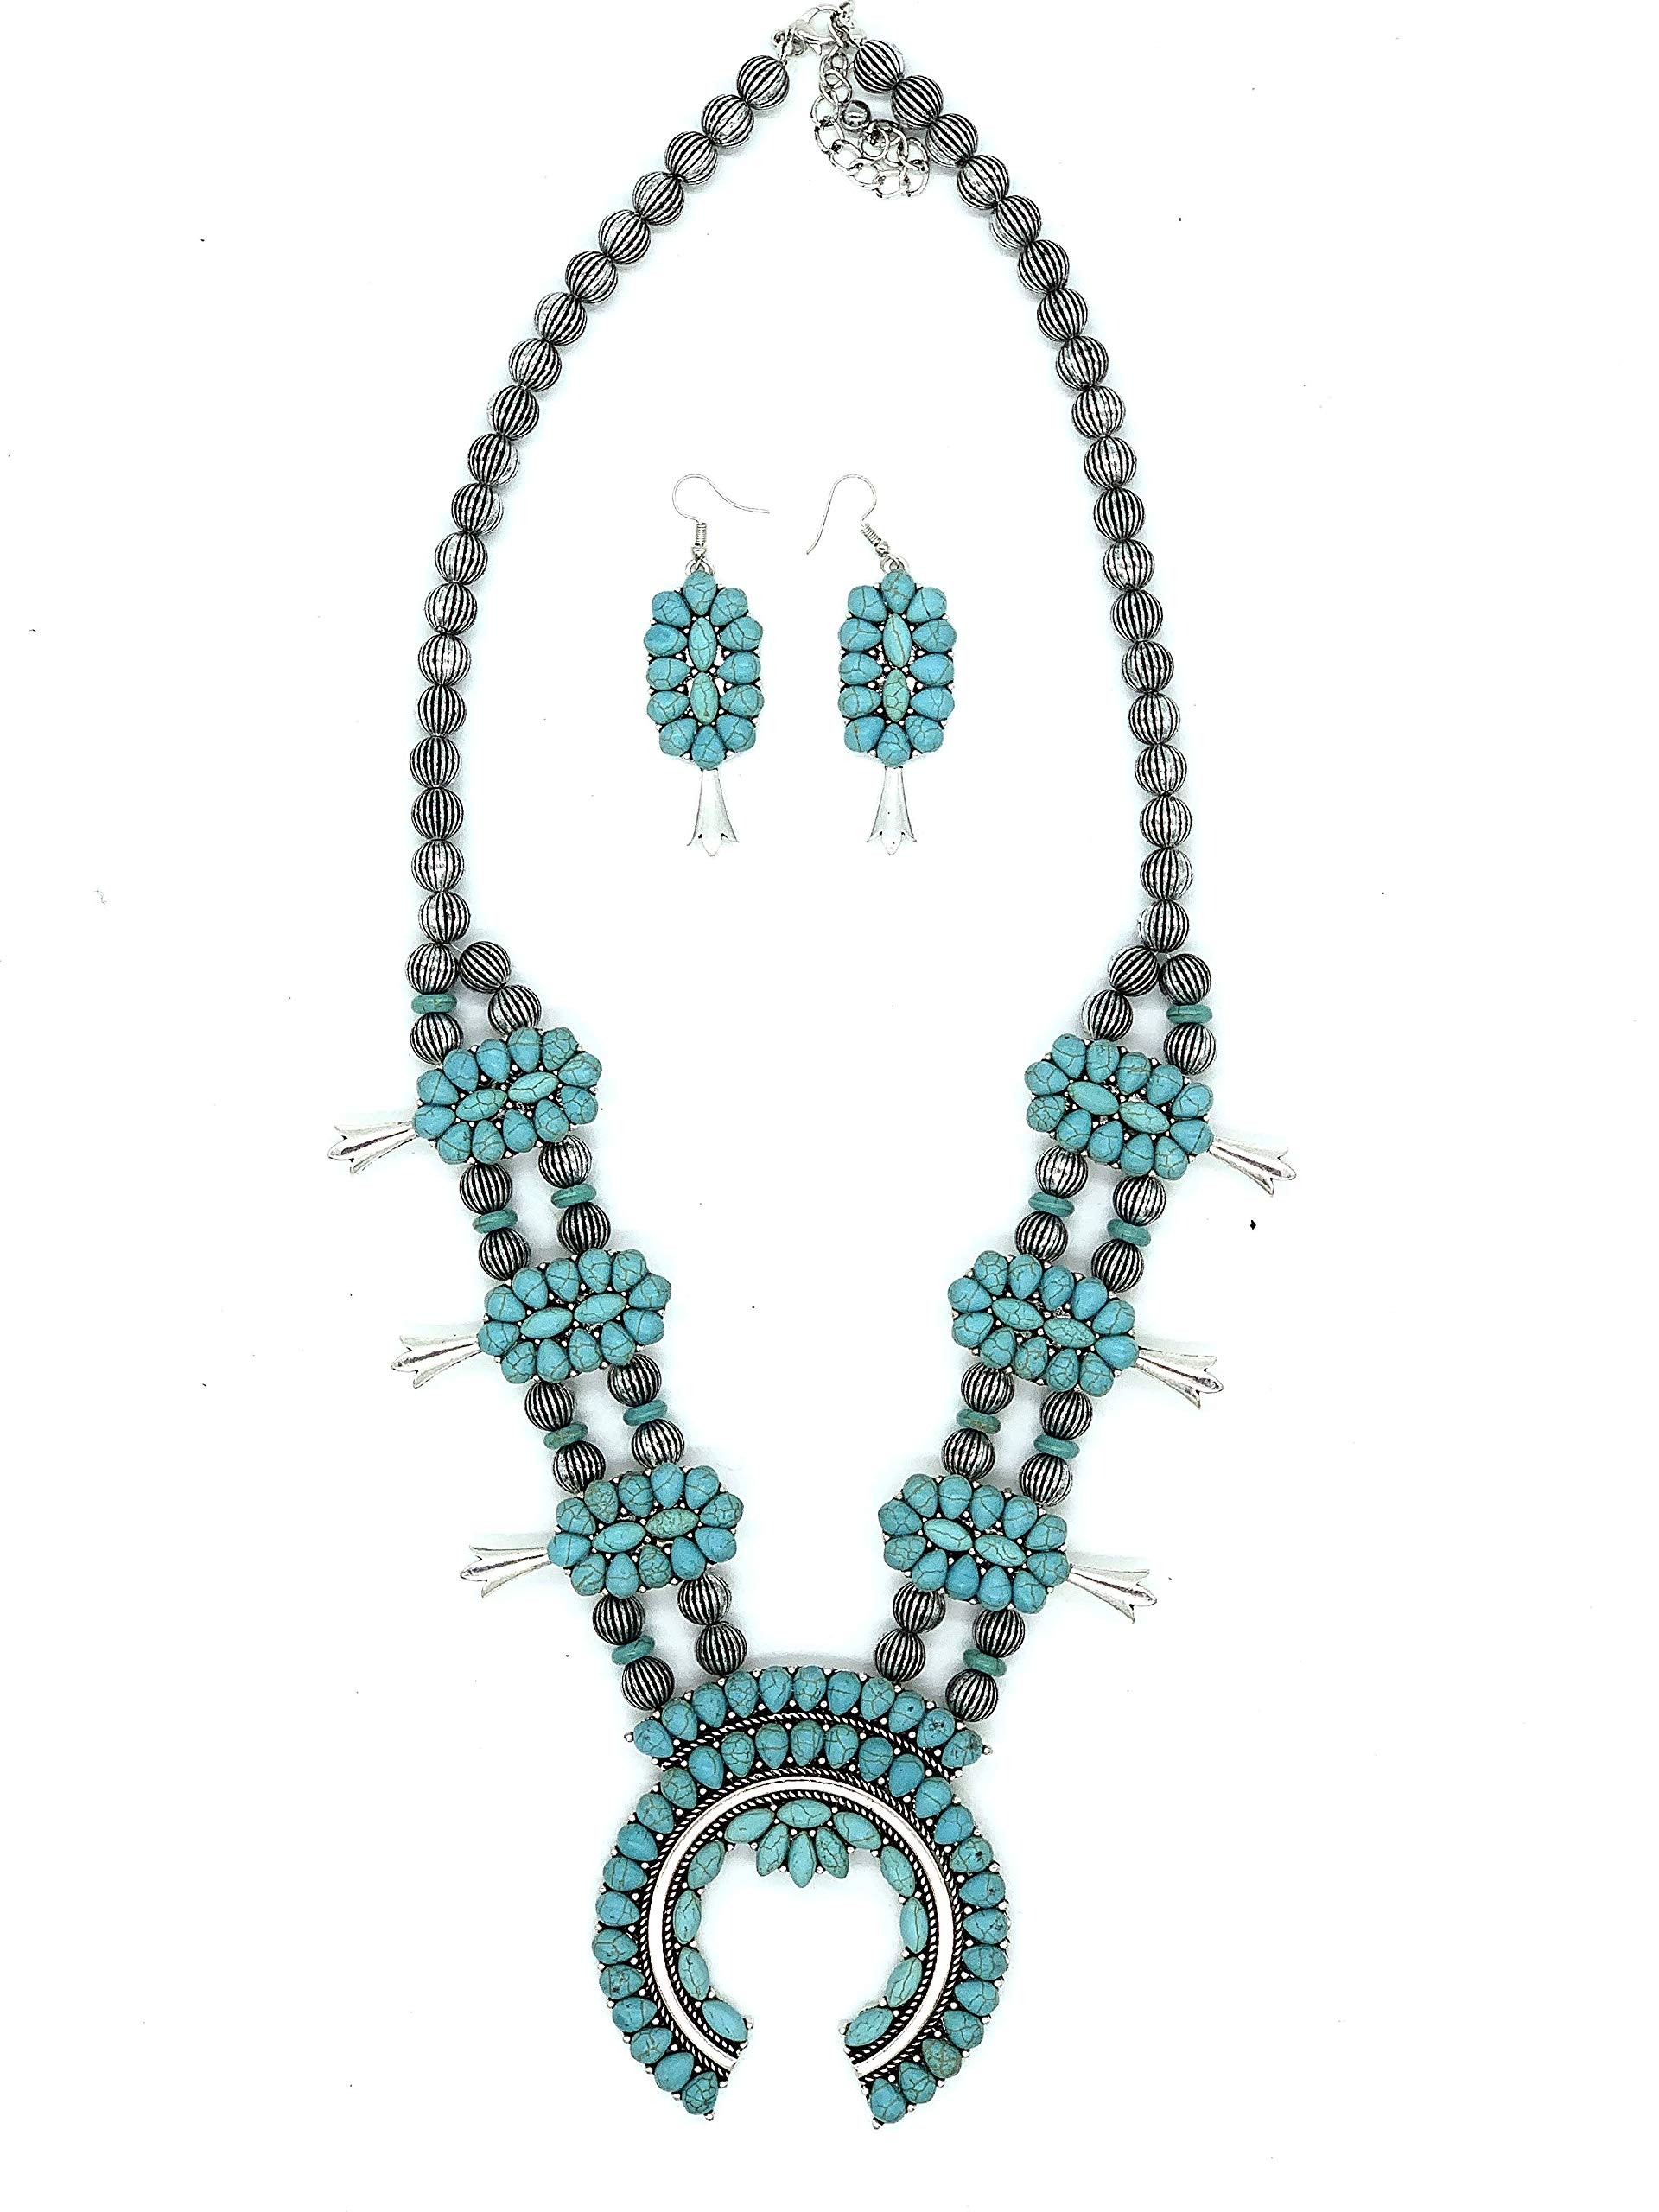 Jayde N' Grey Navajo Turquoise Southwestern Squash Blossom Necklace & Lace Jewelry Bag (Turquoise Long Native) by Jayde N' Grey